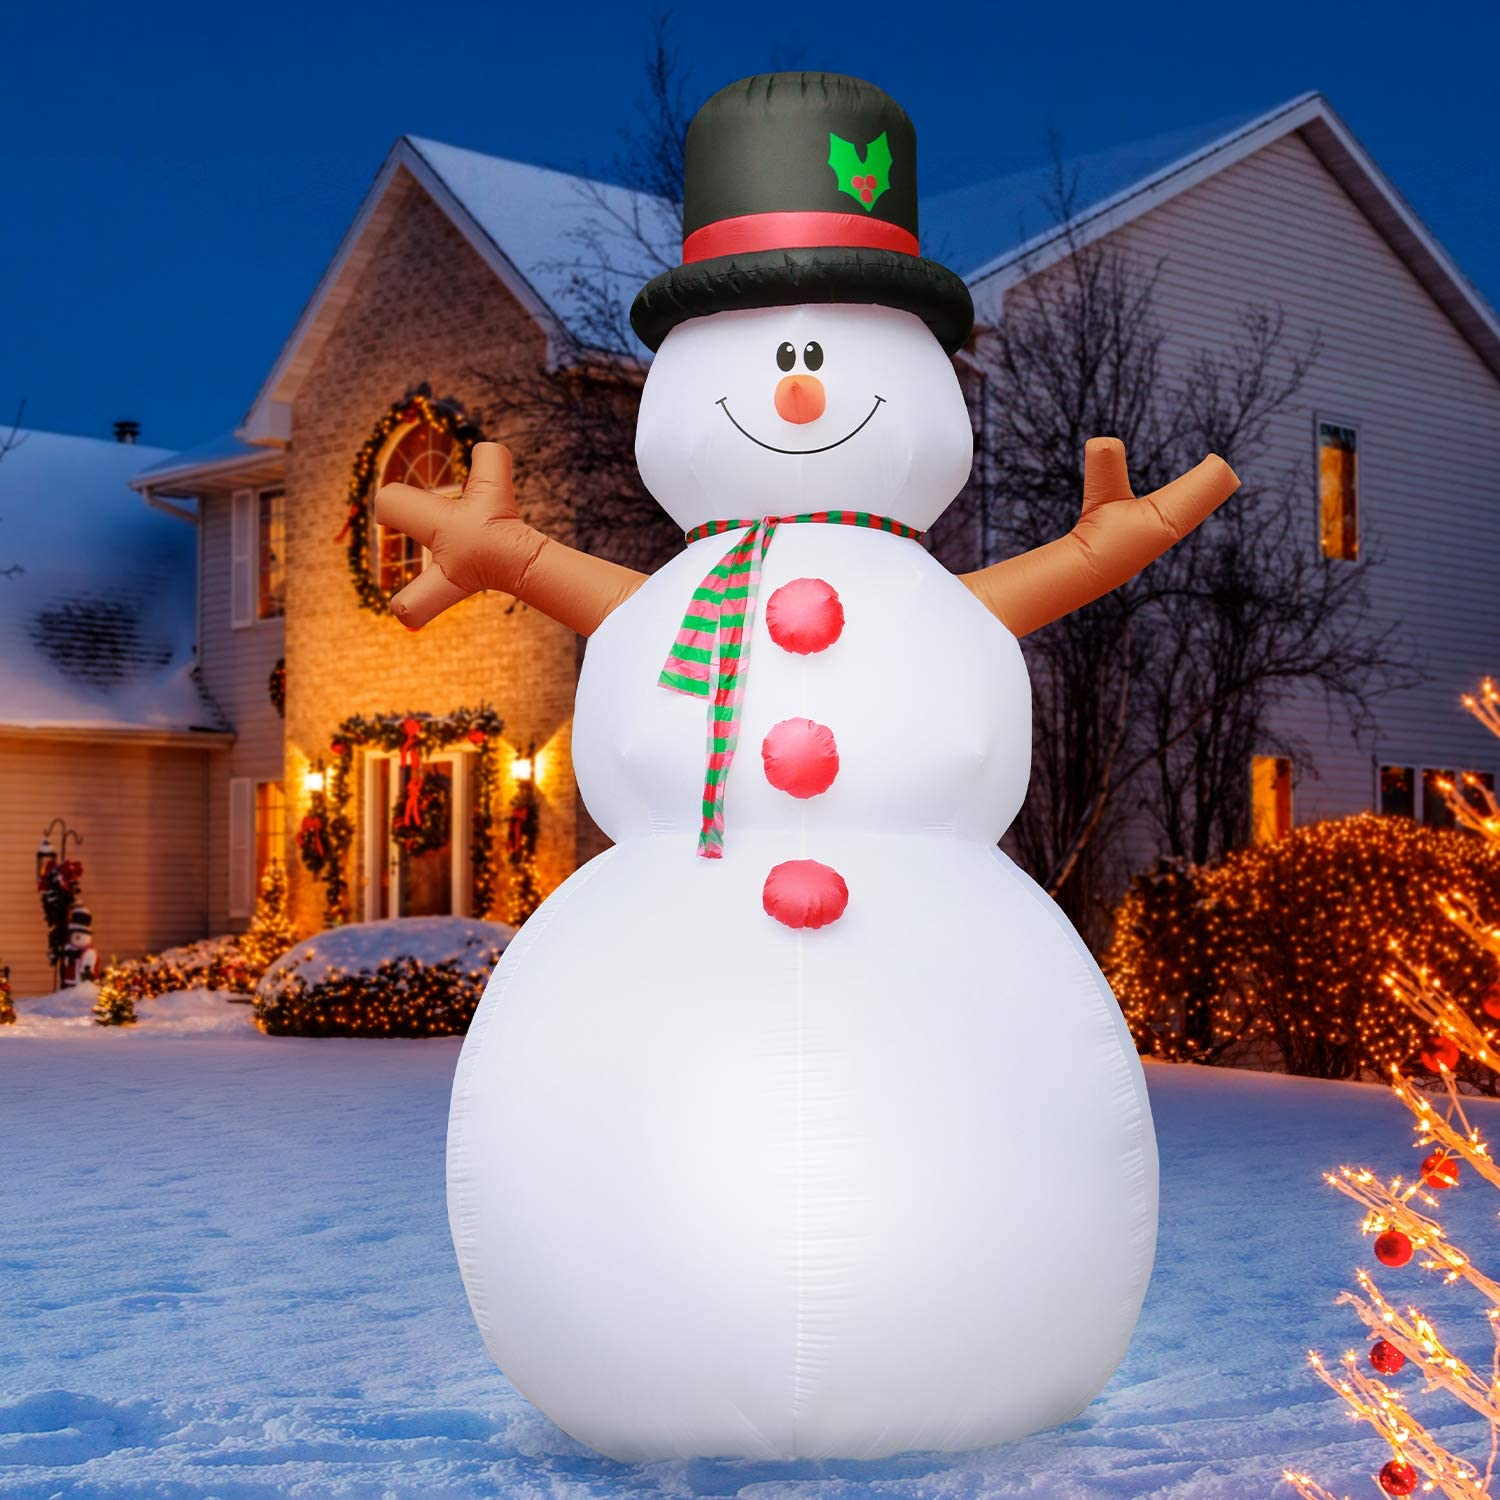 Holidayana Christmas Snowman Inflatable Decor - 15 Ft. Snowman Christmas Inflatable Decor with Interior Lighting, Built-in Fan, and Anchor Ropes